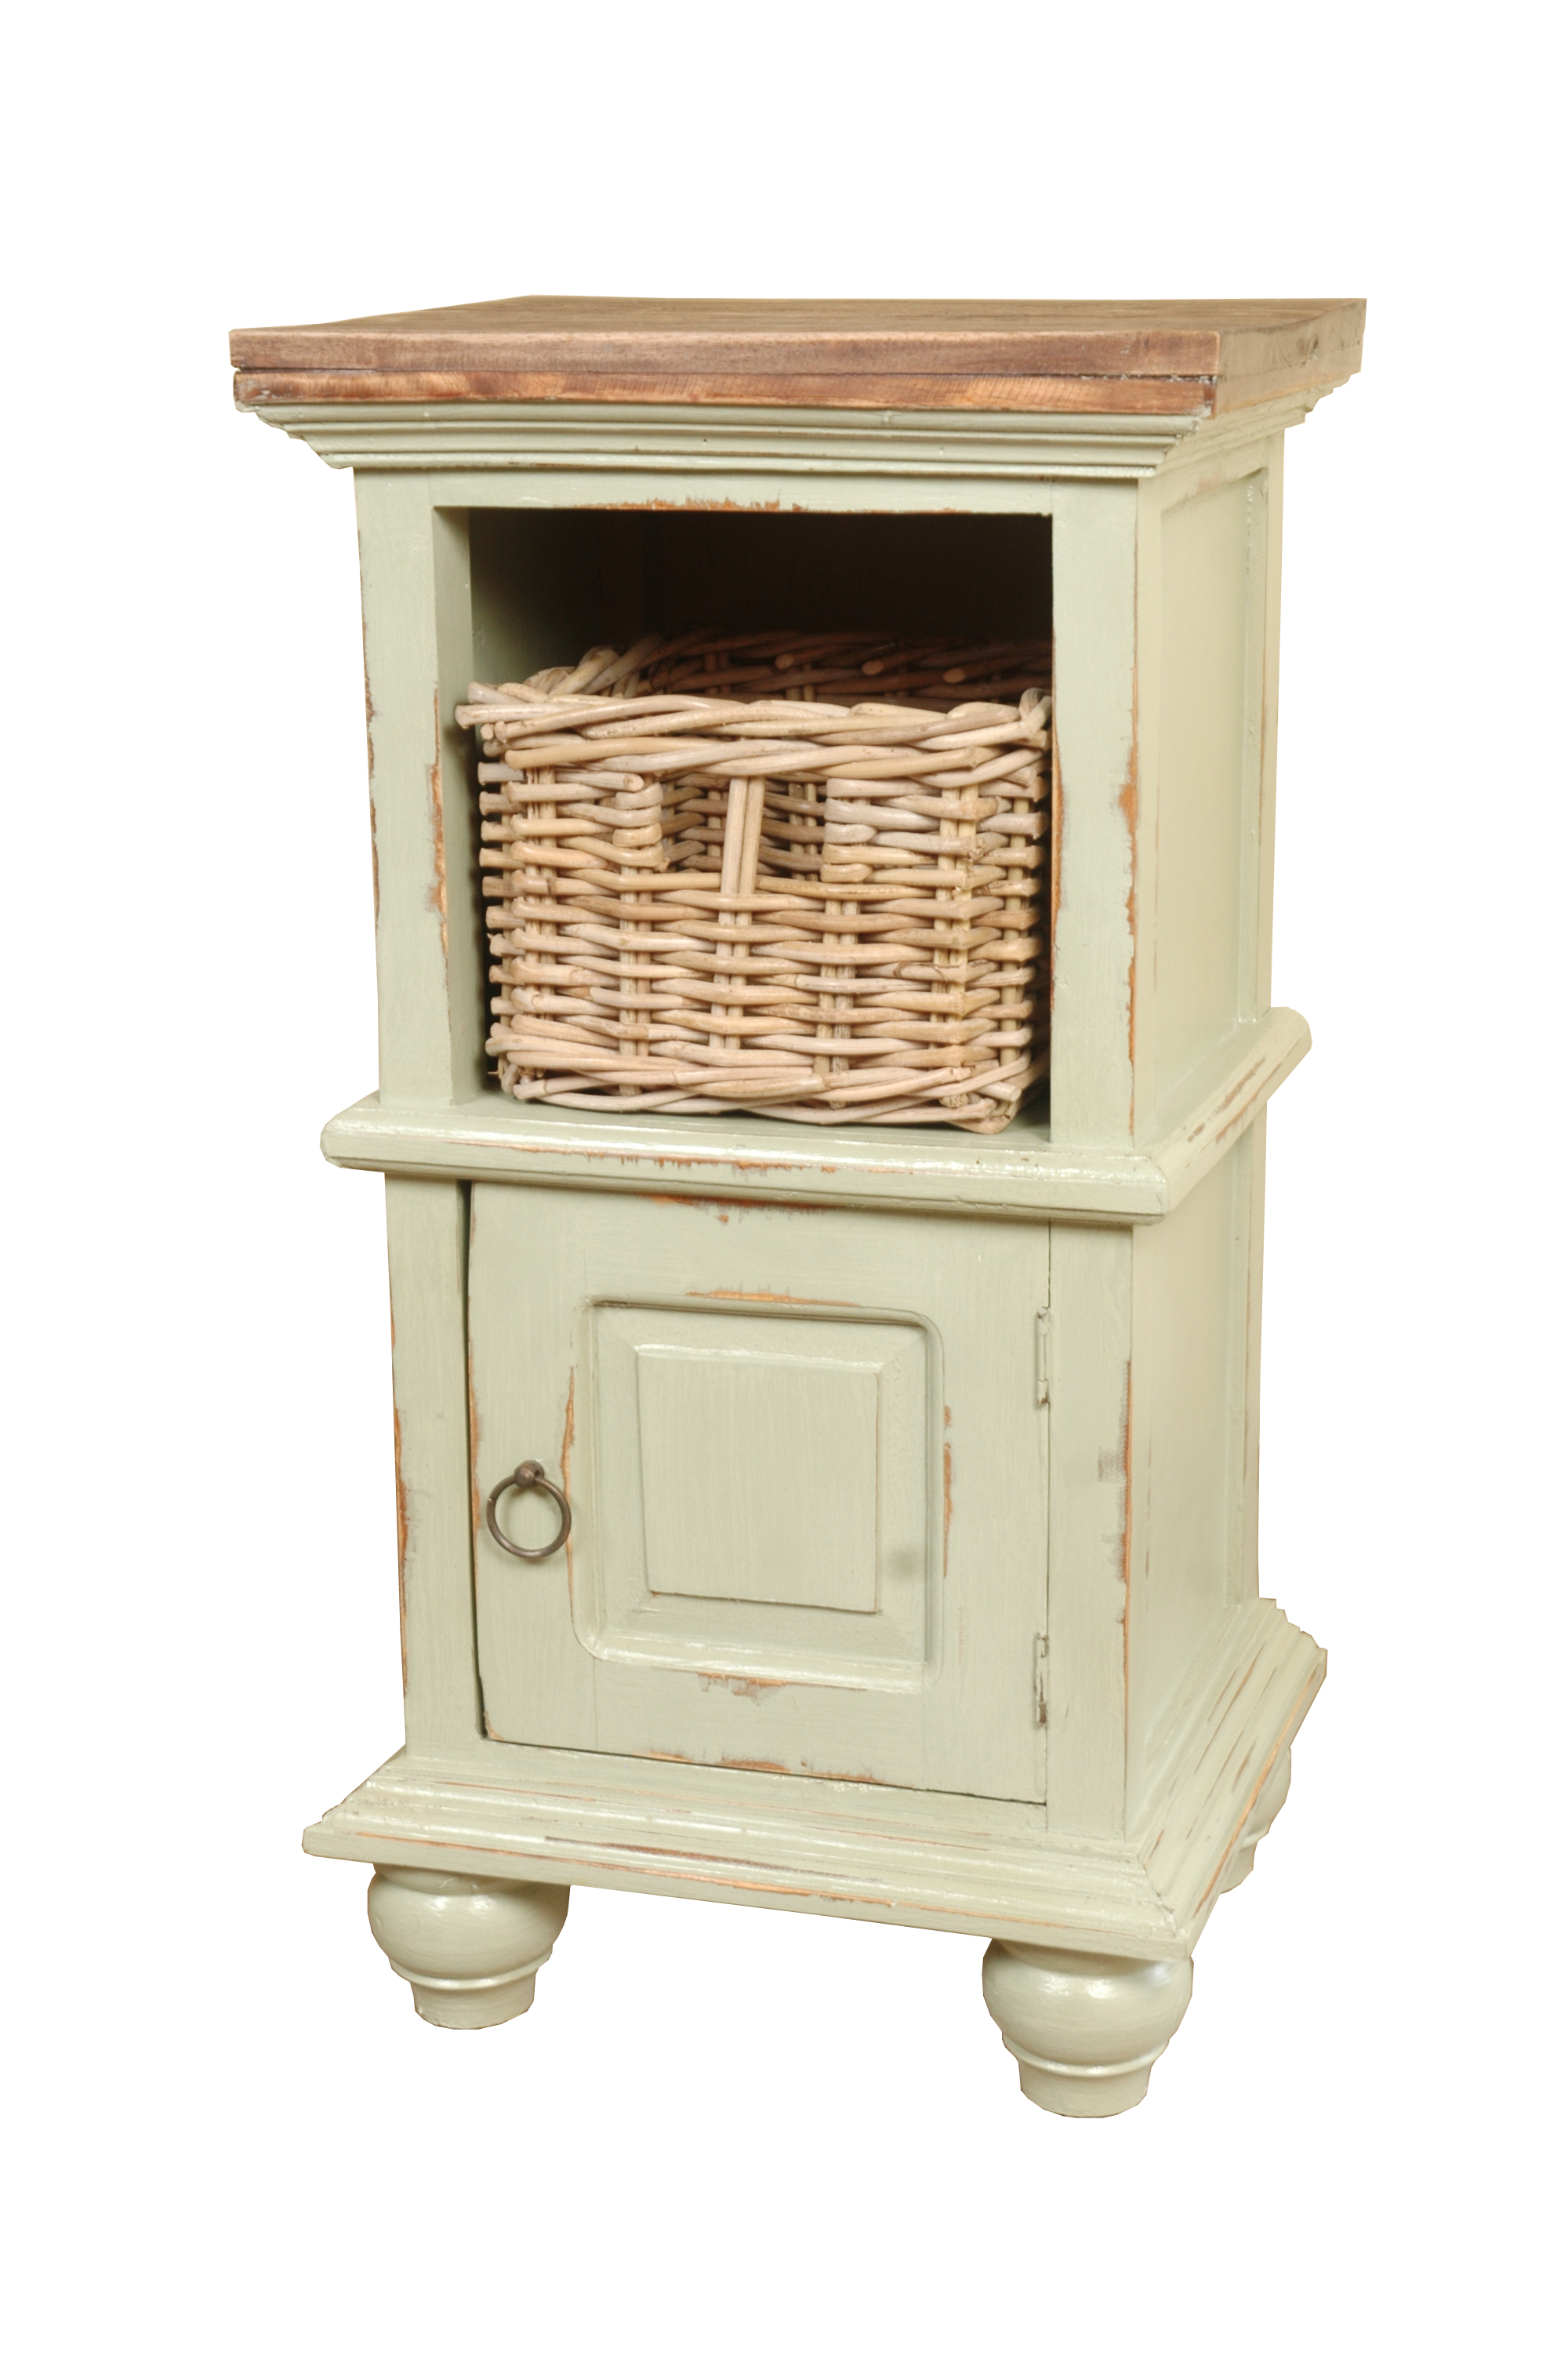 sunset trading cottage end table with basket hooker accent baskets wicker decorative storage cabinet doors pub set tall bedside tables drawers ashley coffee and inch narrow depth